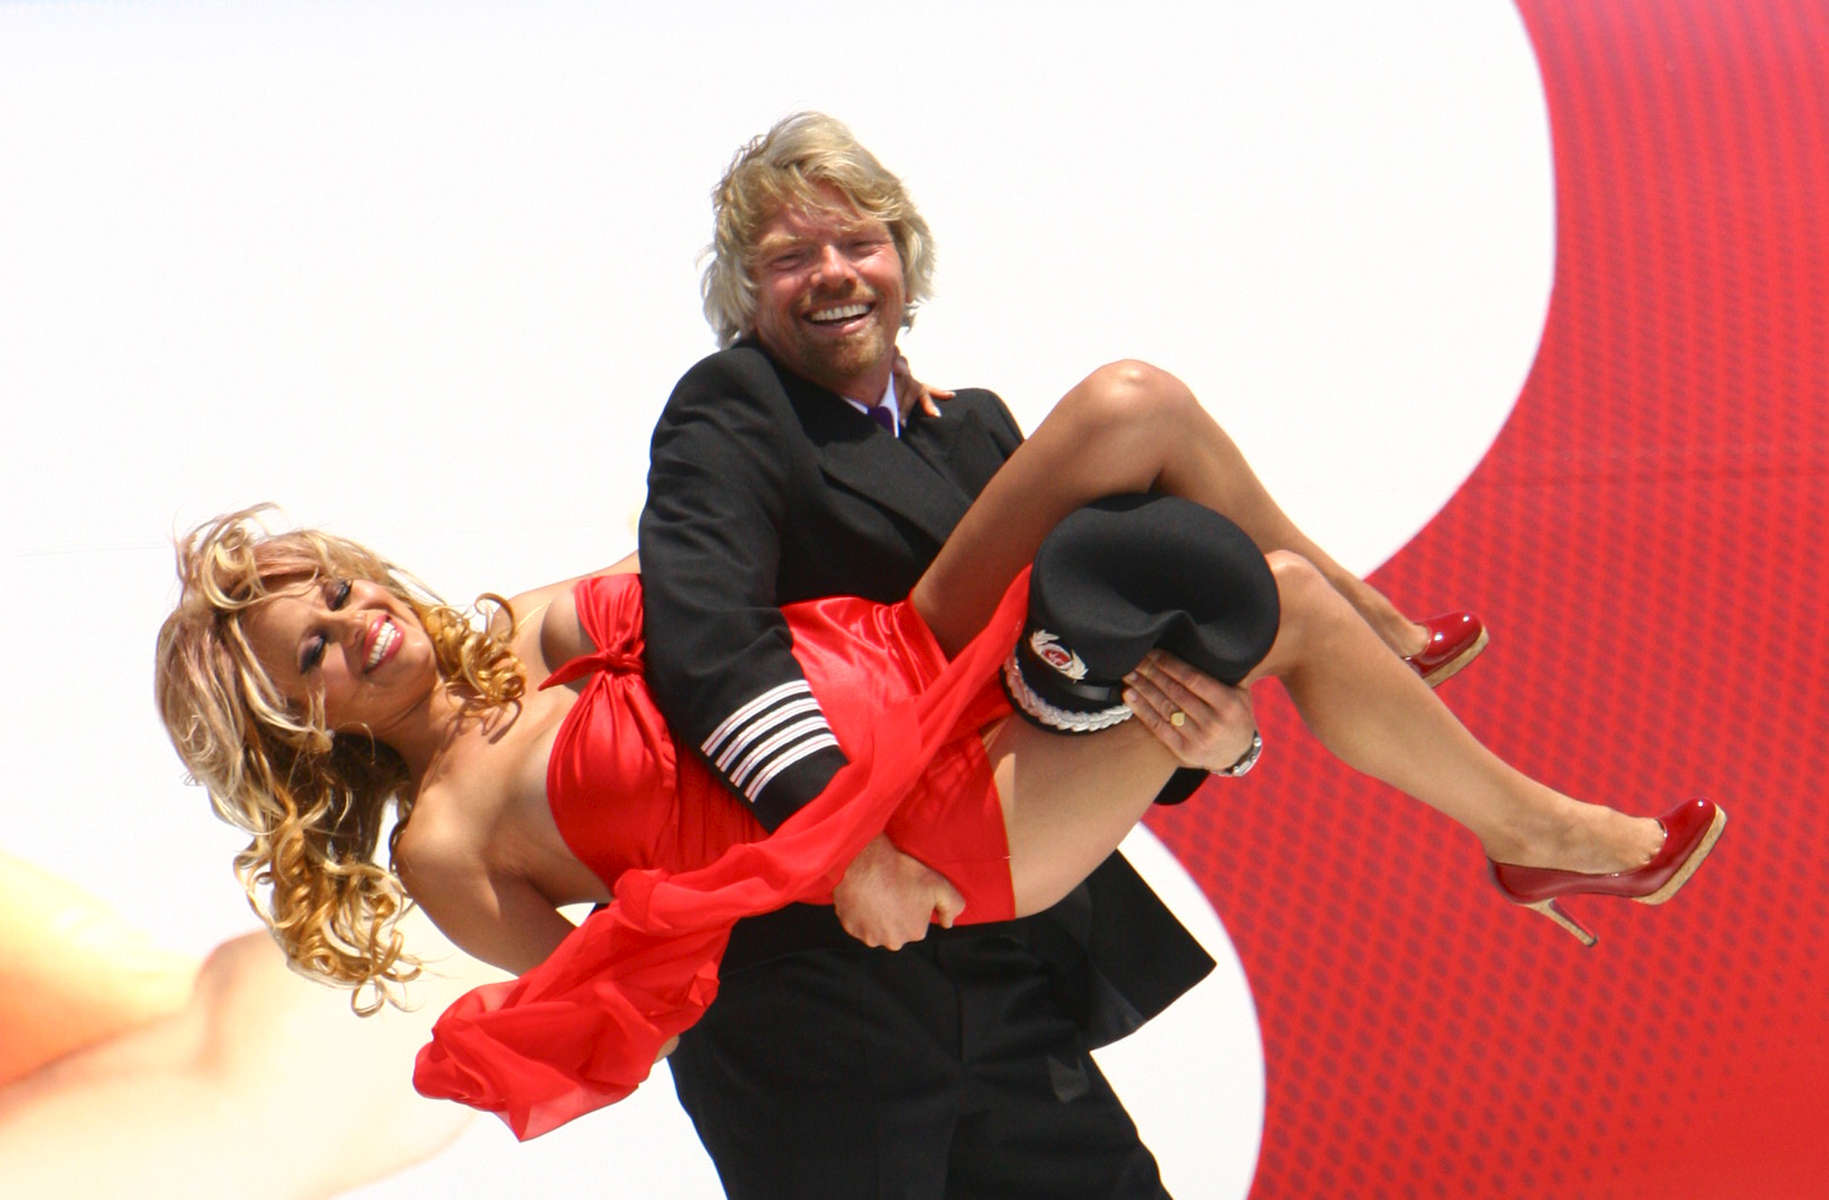 Sir Richard Branson introduces limited Edition 21st Birthday flight while he walks at the left wing of the plane with a surprise celebrity guest (Pamela Anderson) {quote}Brings to Life{quote} newly styled {quote}Flying Lady{quote} in JFK Airport terminal 4 on Wed. June 22, 2005.